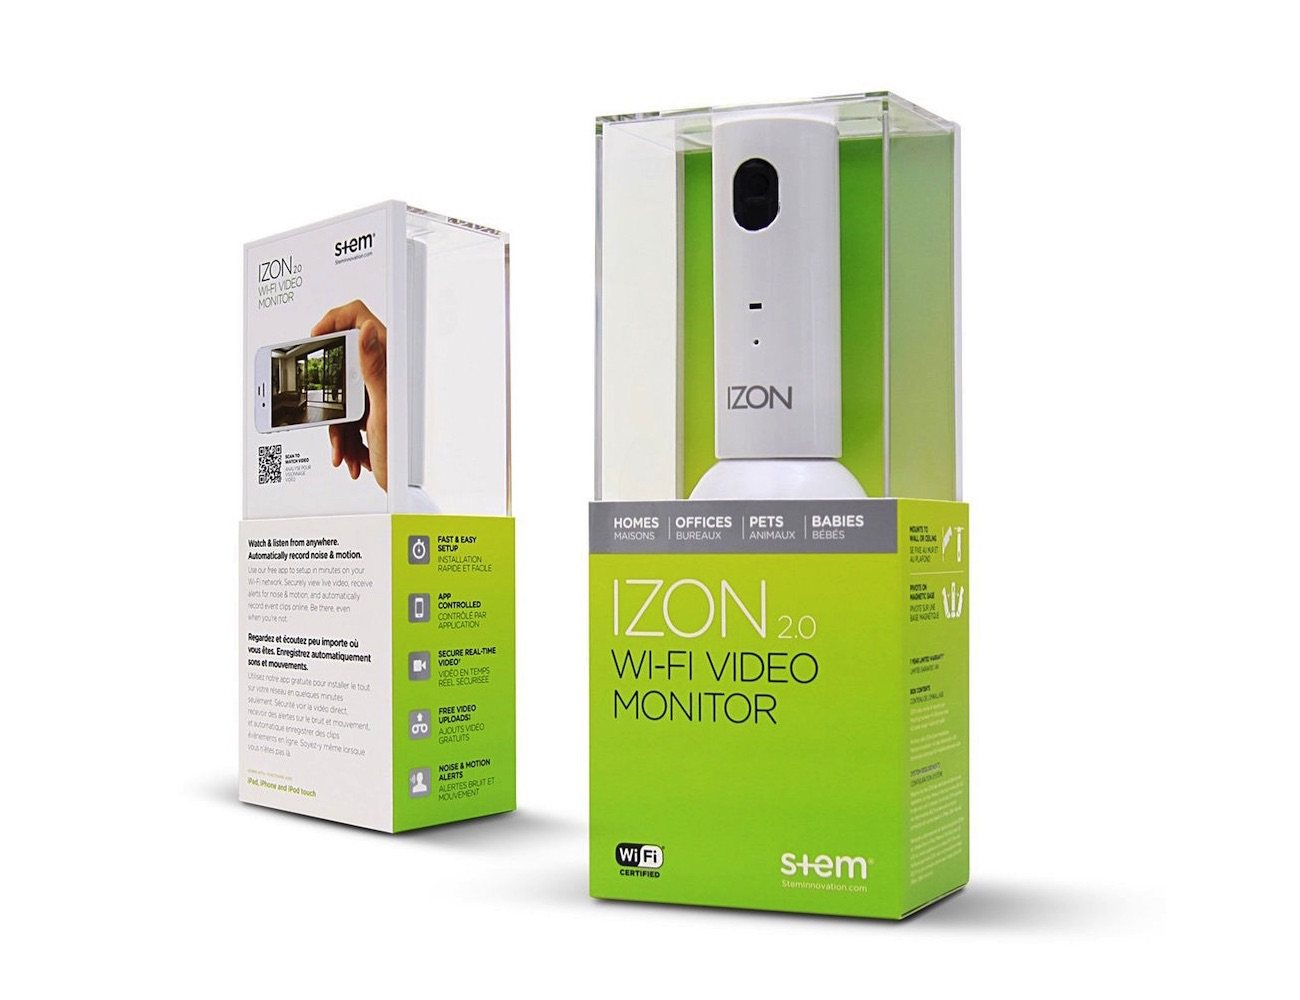 IZON Stem – Video Monitoring Smart Home Camera